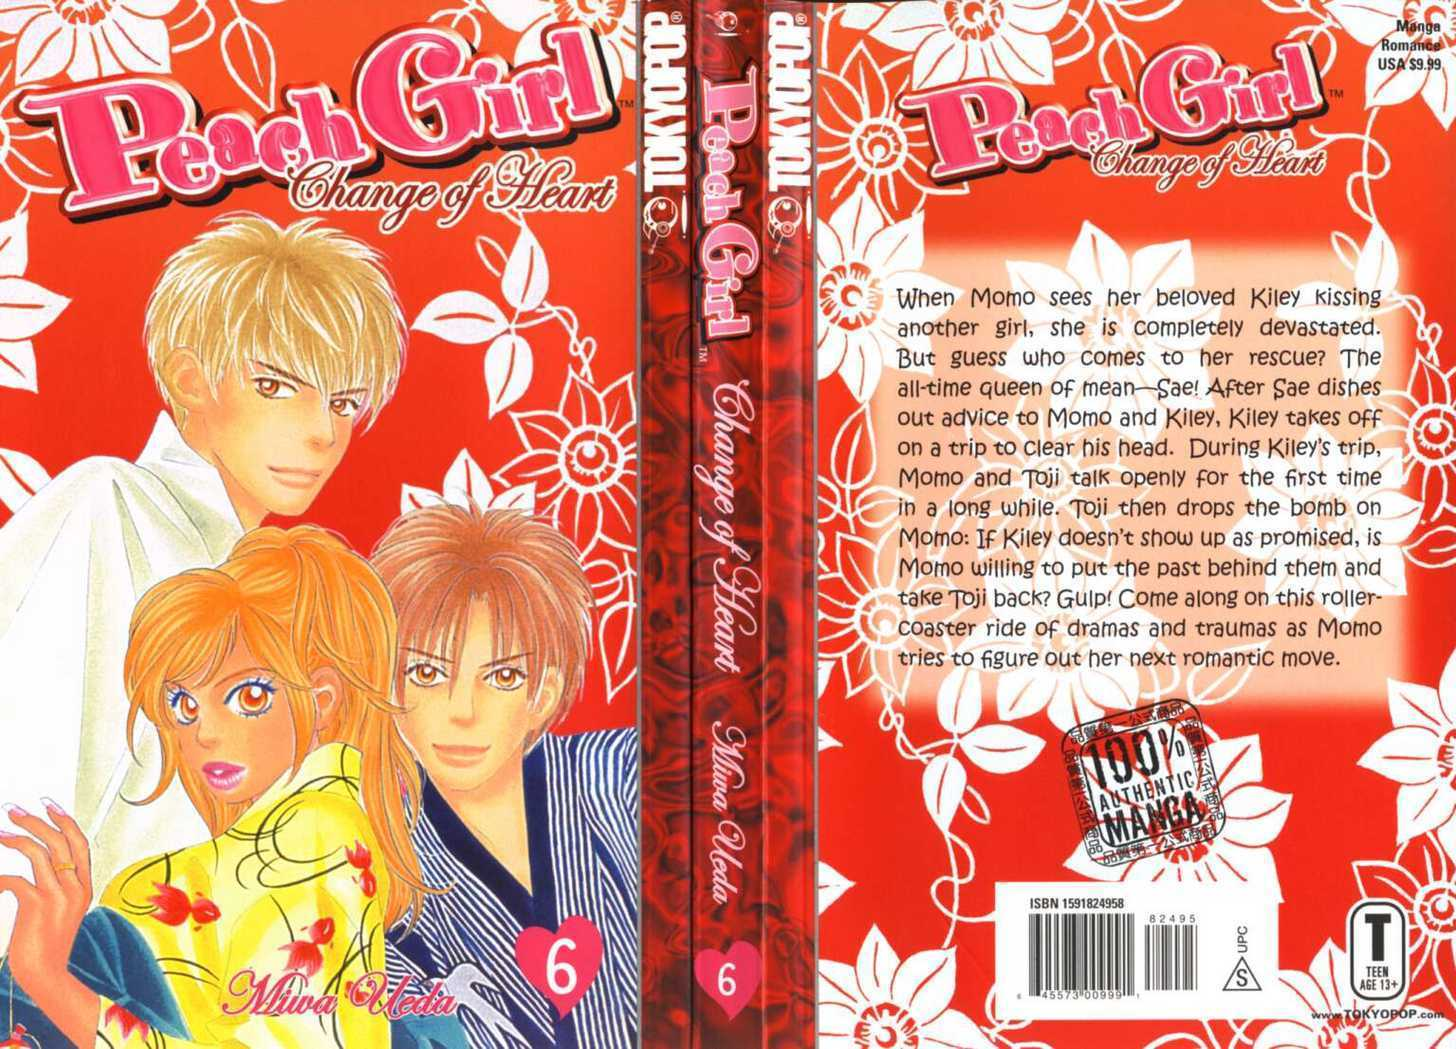 Peach Girl 14 Page 1